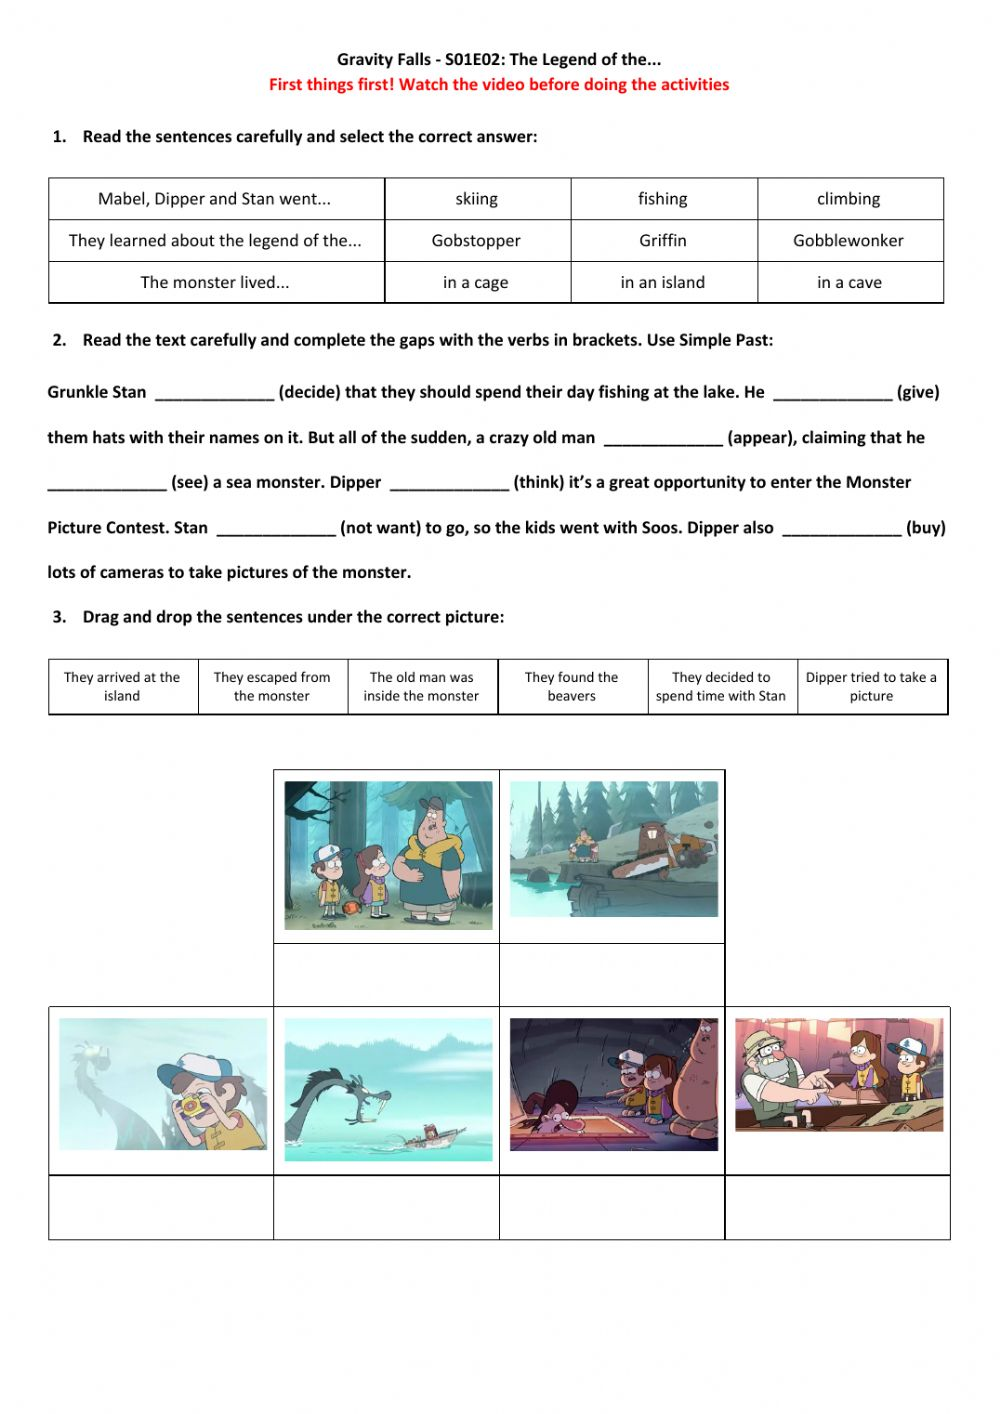 hight resolution of Gravity Falls - S01-E02: The Legend of the... worksheet